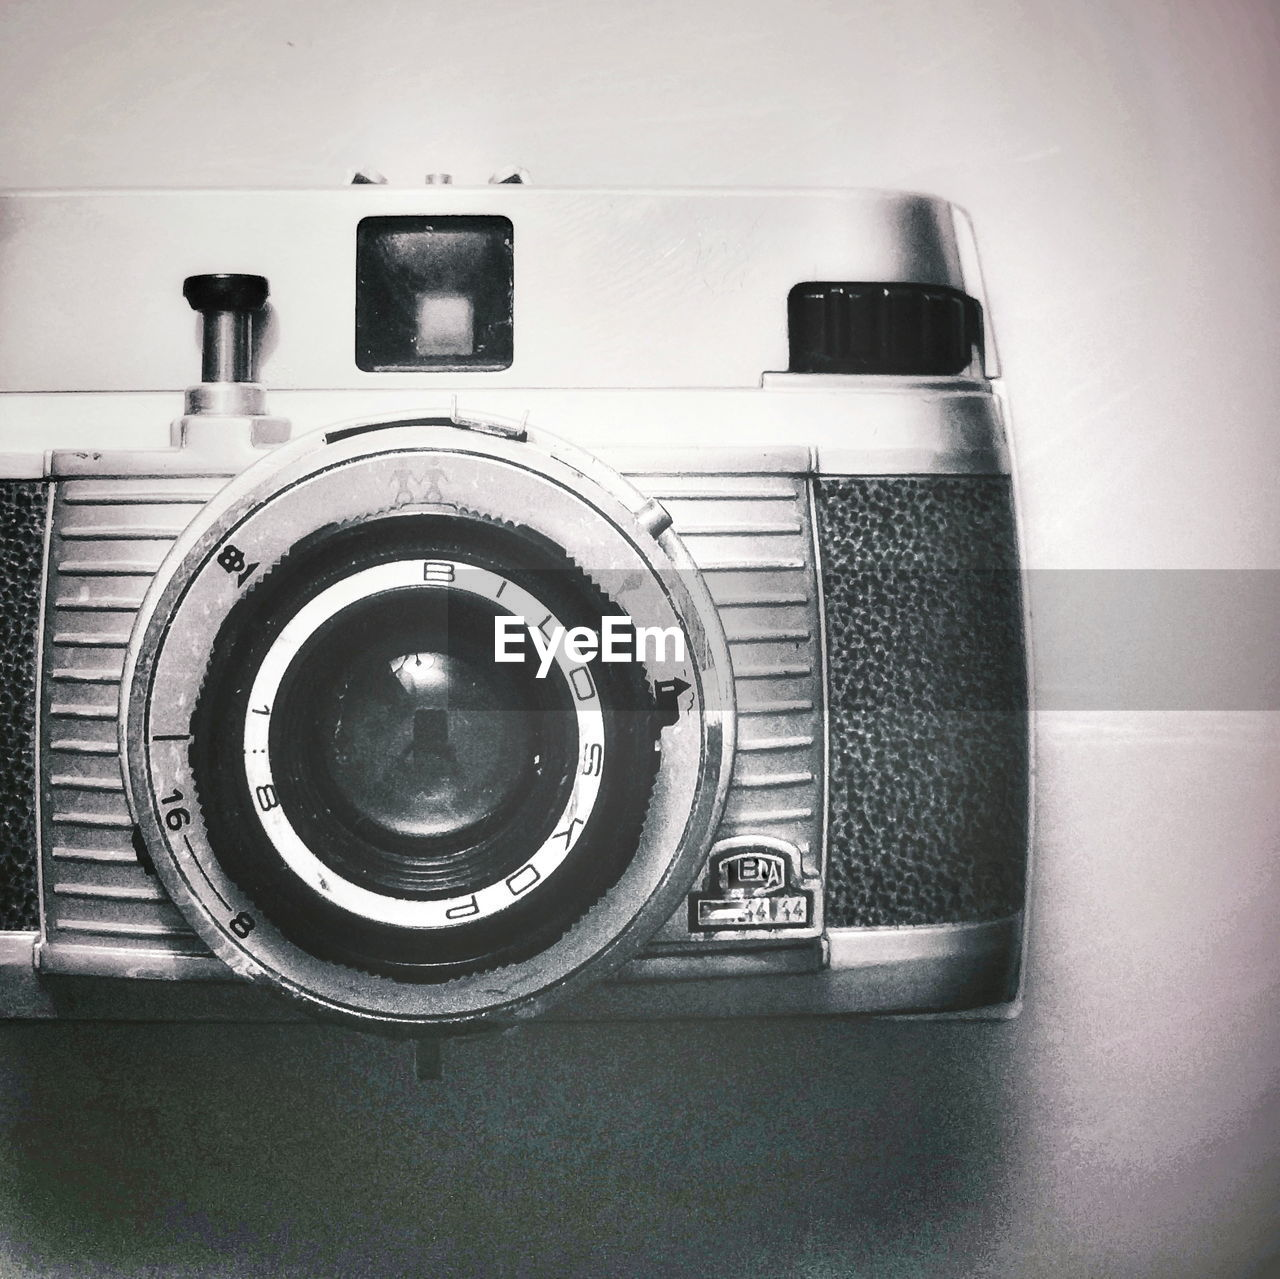 technology, retro styled, old-fashioned, no people, close-up, indoors, camera - photographic equipment, photography themes, day